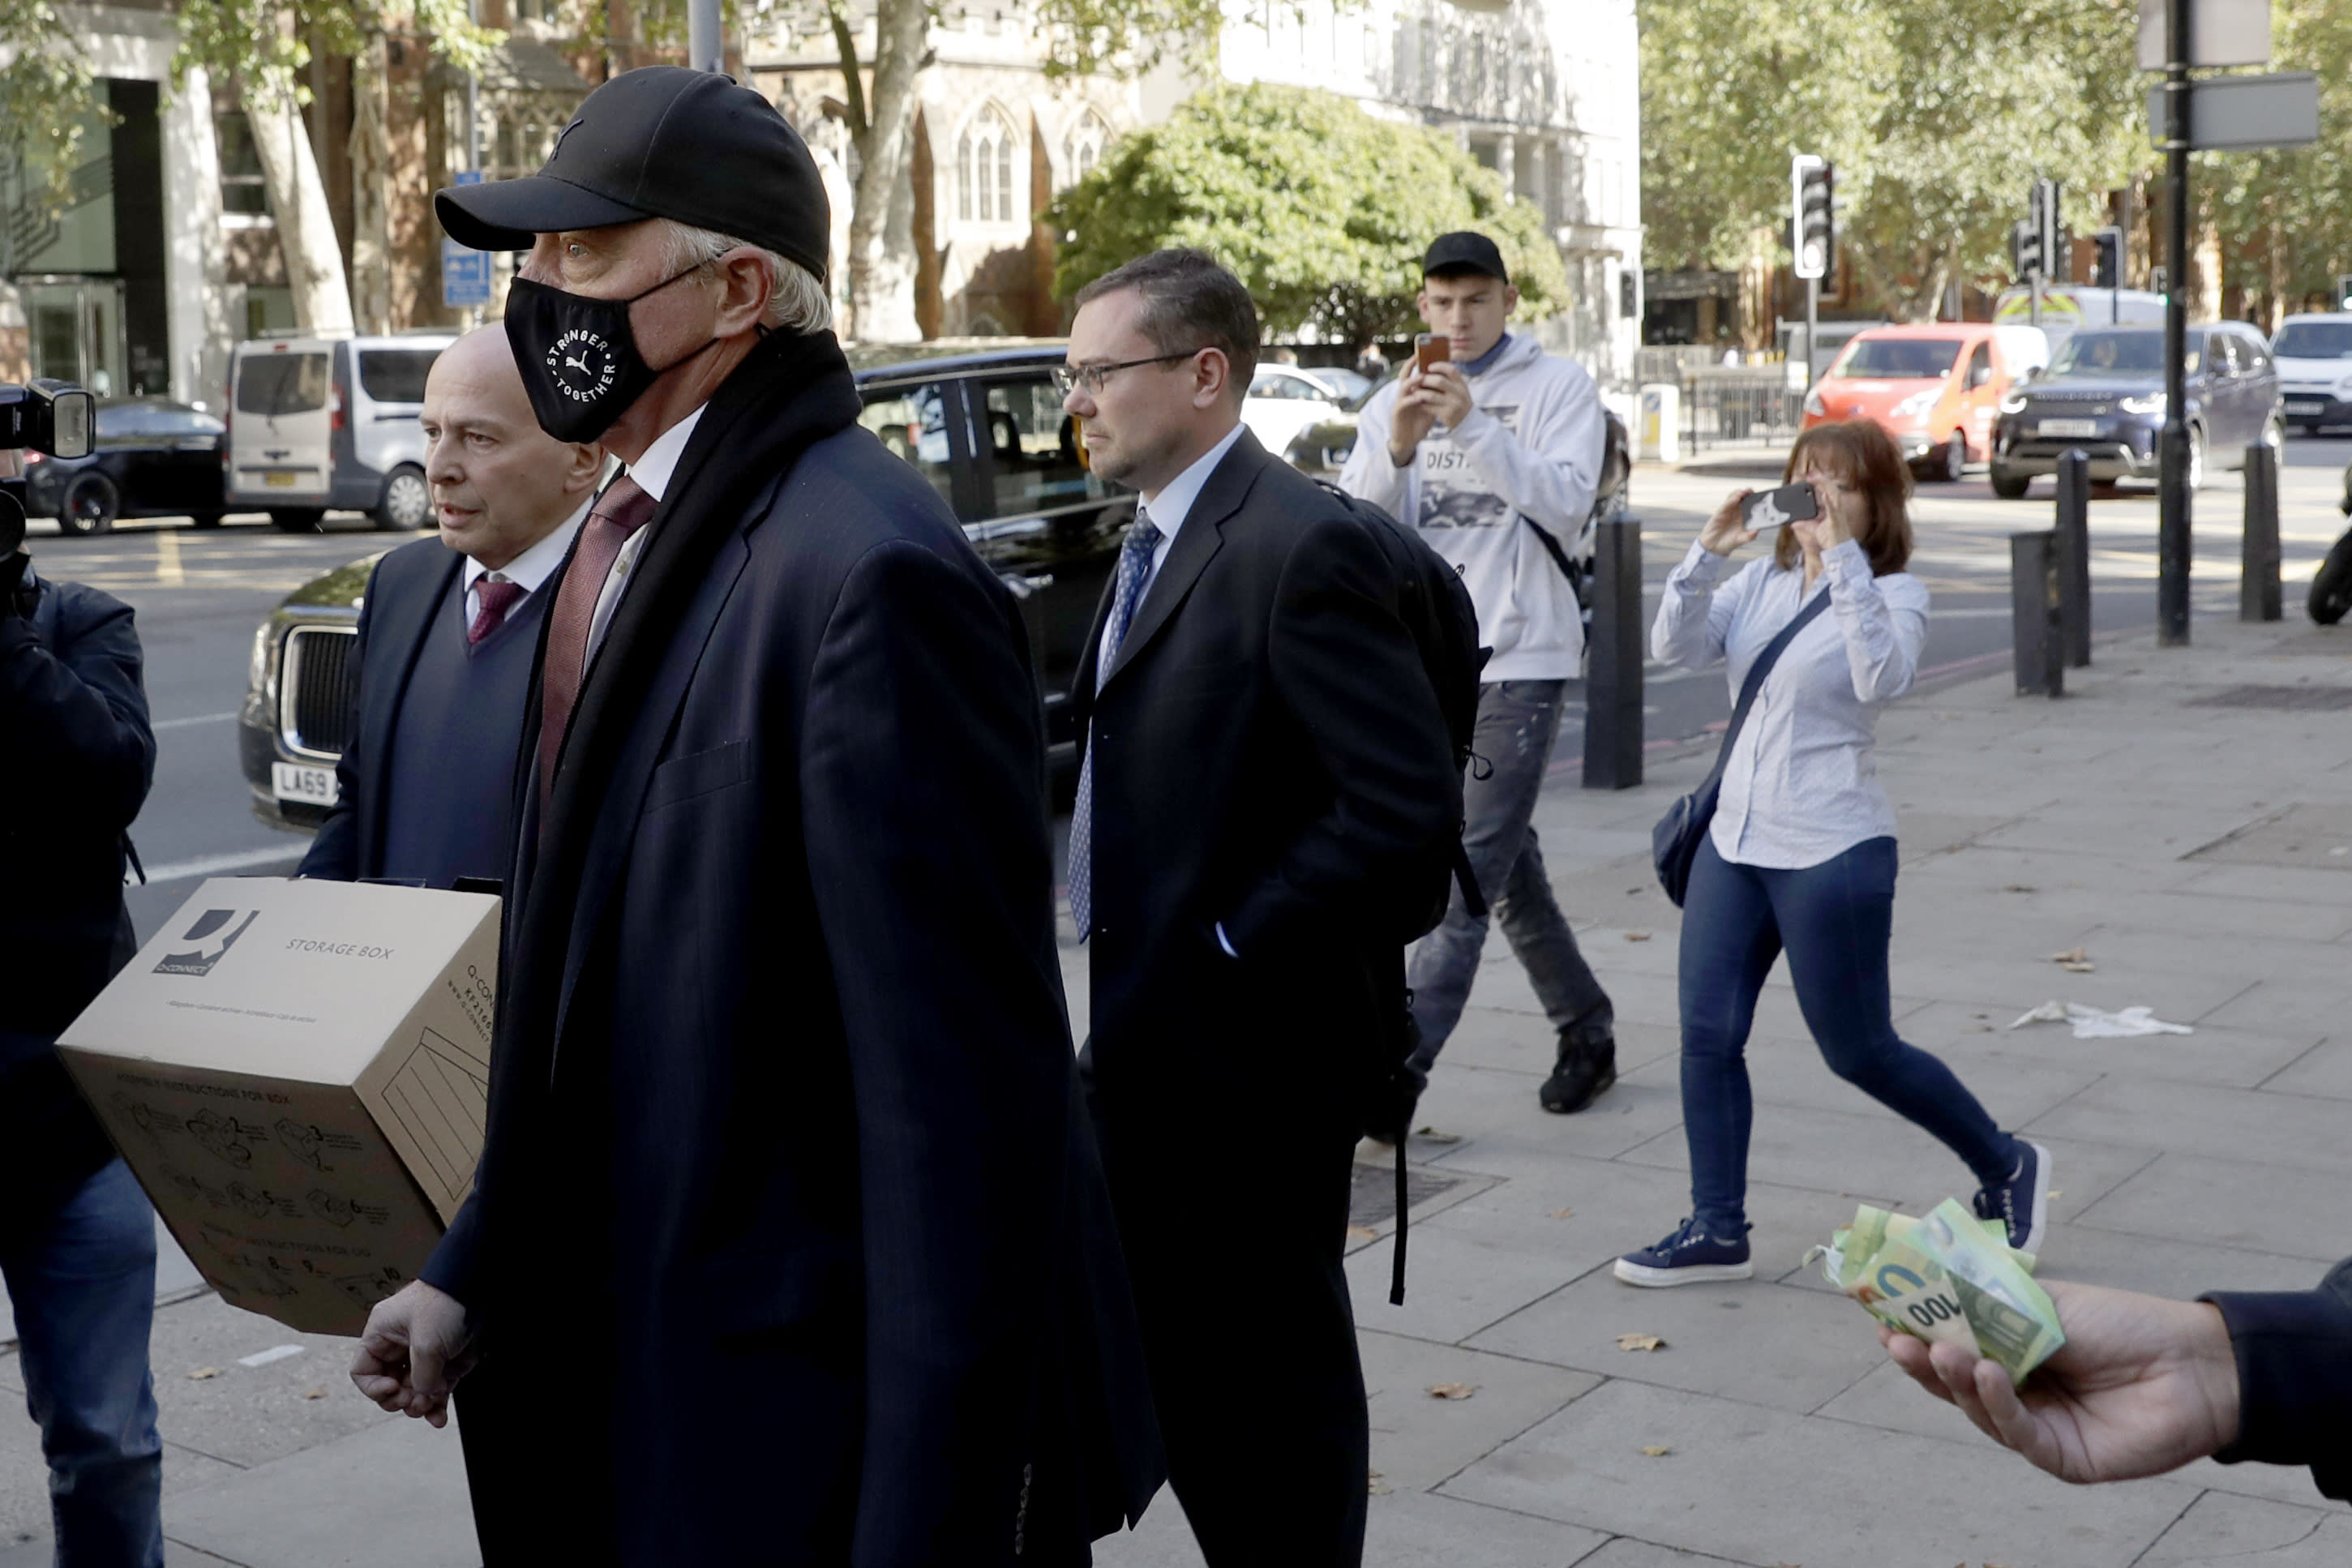 Retired German tennis star Boris Becker leaves Westminster Magistrates Court in London, after being declared bankrupt and accused of not complying with obligations to disclose information, Thursday, Sept. 24, 2020. Becker is being prosecuted by the Insolvency Service. (AP Photo/Matt Dunham)